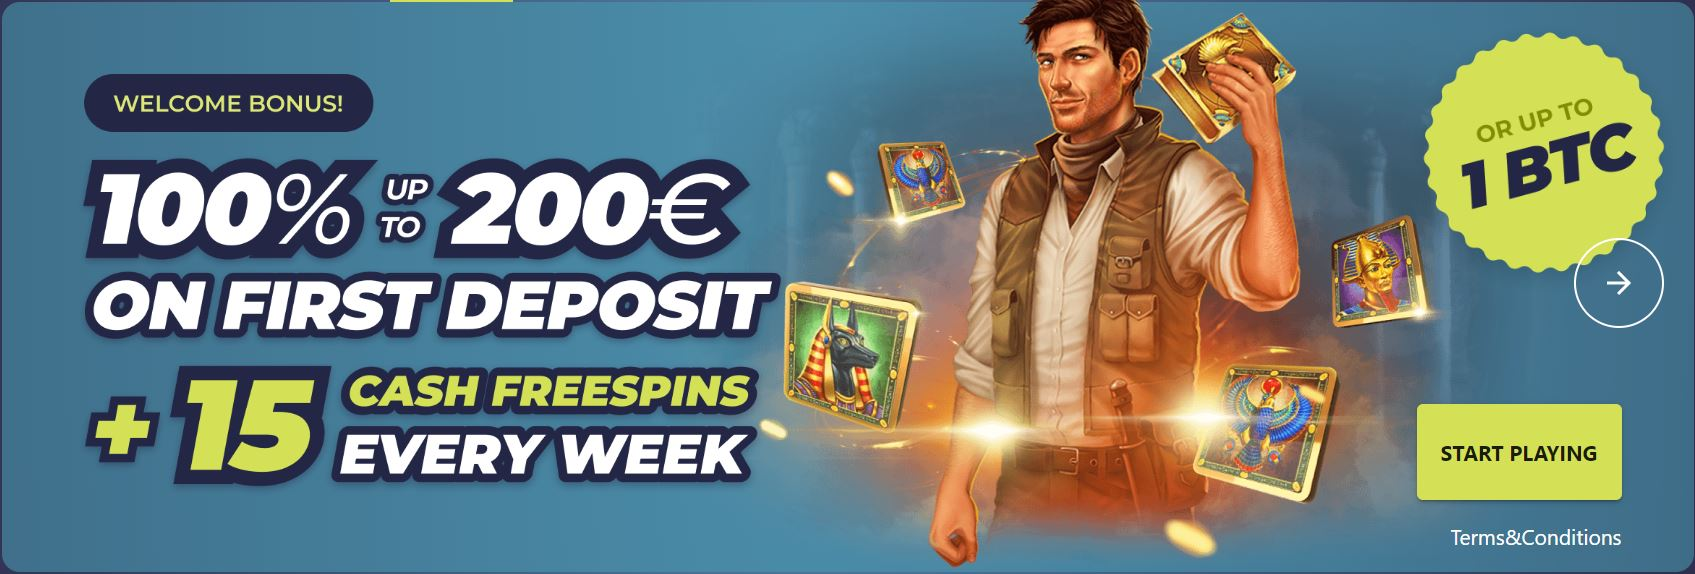 Casinoin Casino Welcome Bonus